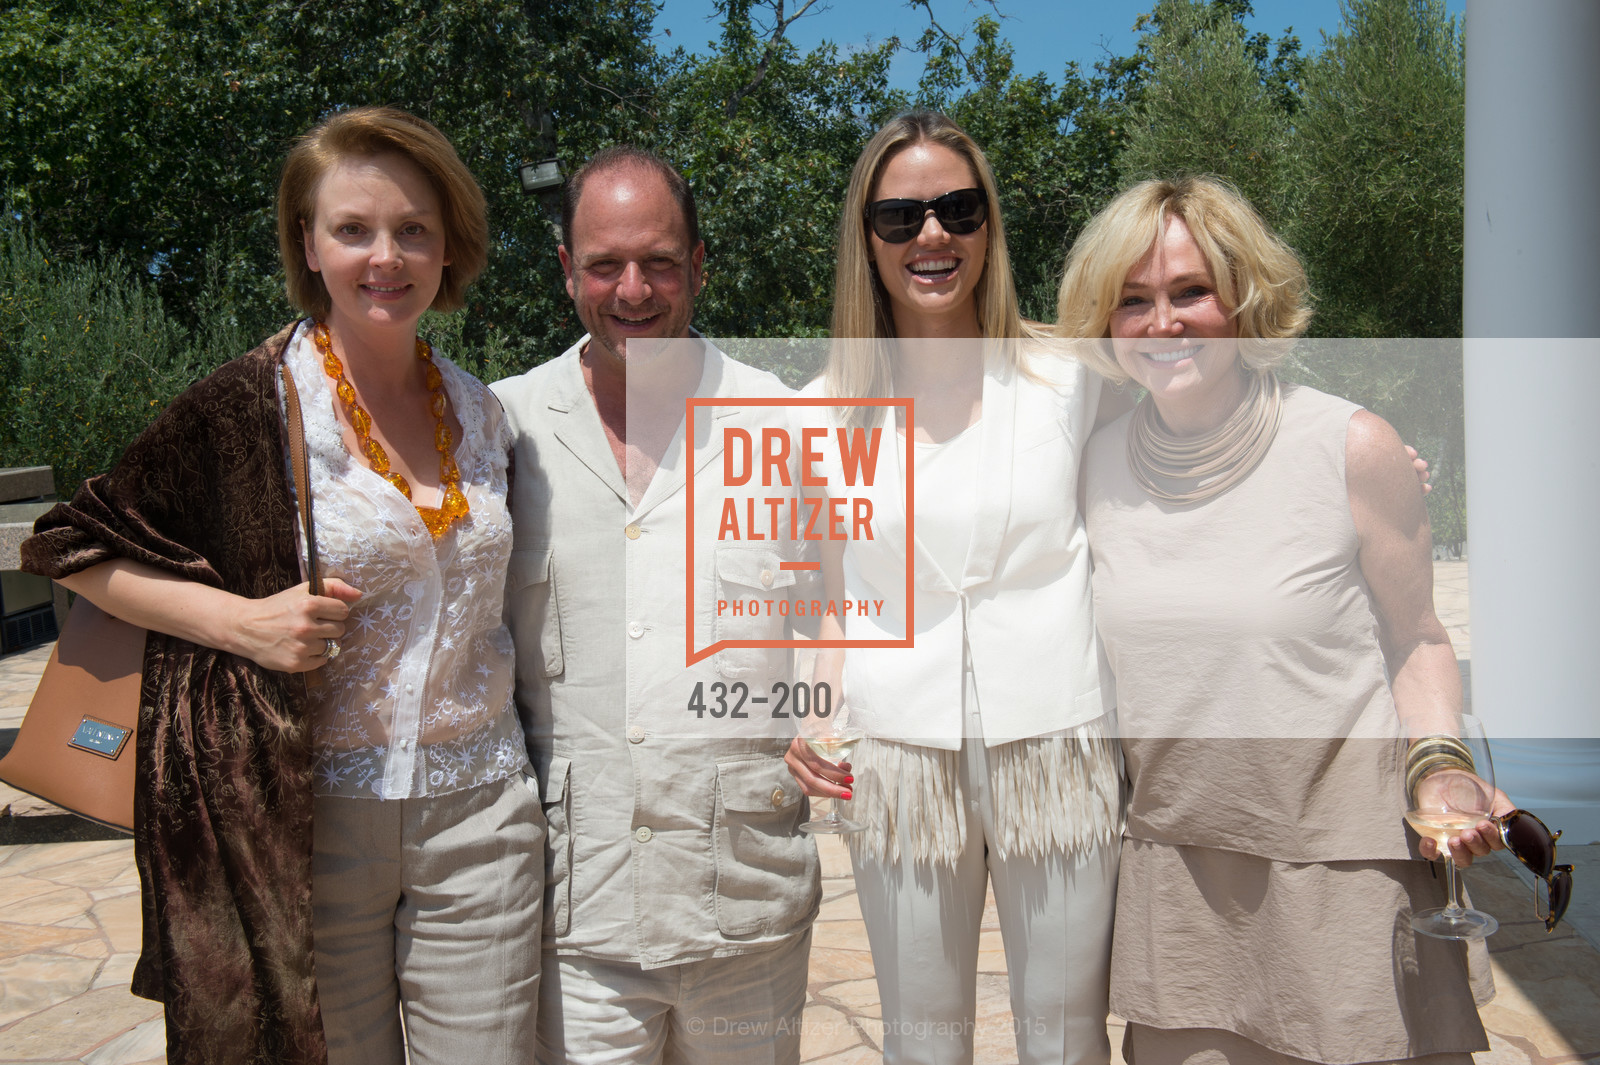 Nina Kotova, Barrett Wissman, Kathryn Hall, Festival del Sole Brunello Cucinelli Luncheon Hosted by Hall Wines and Neiman Marcus, P\. 56 Auberge Rd, July 19th, 2015,Drew Altizer, Drew Altizer Photography, full-service event agency, private events, San Francisco photographer, photographer California